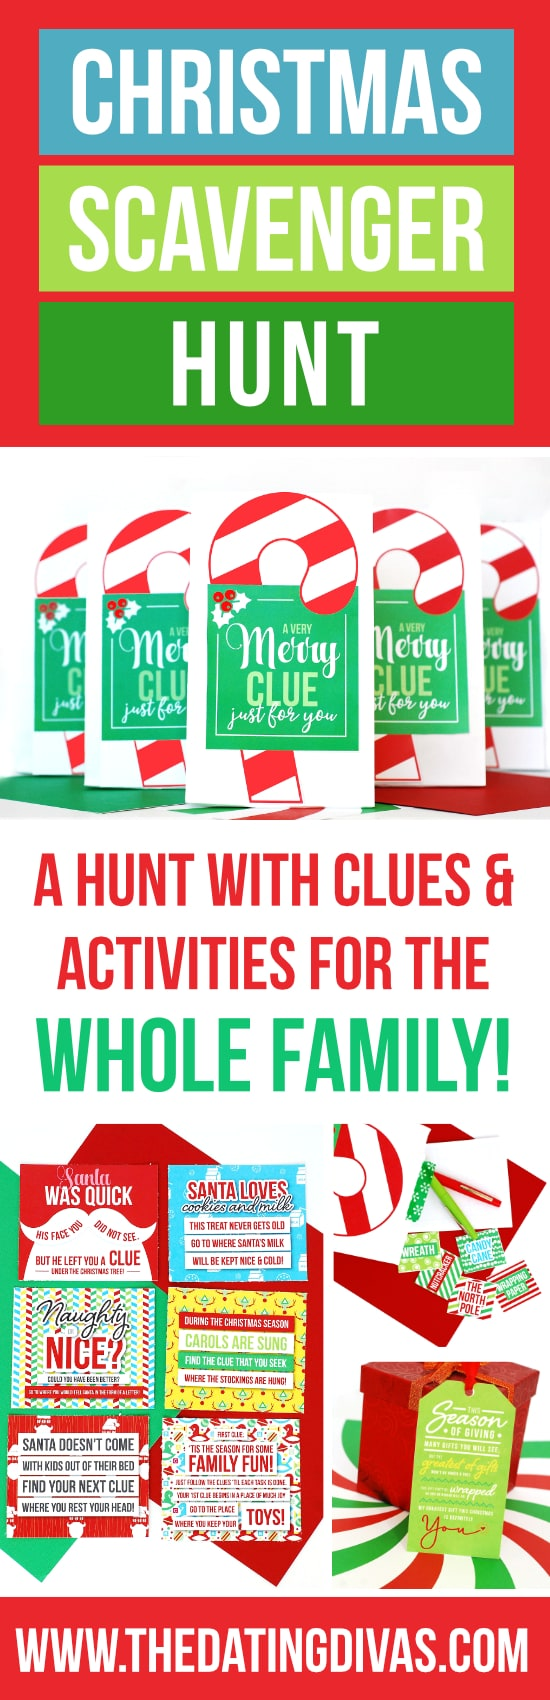 photo regarding Christmas Scavenger Hunt Printable Clues titled Xmas Scavenger Hunt - The Relationship Divas